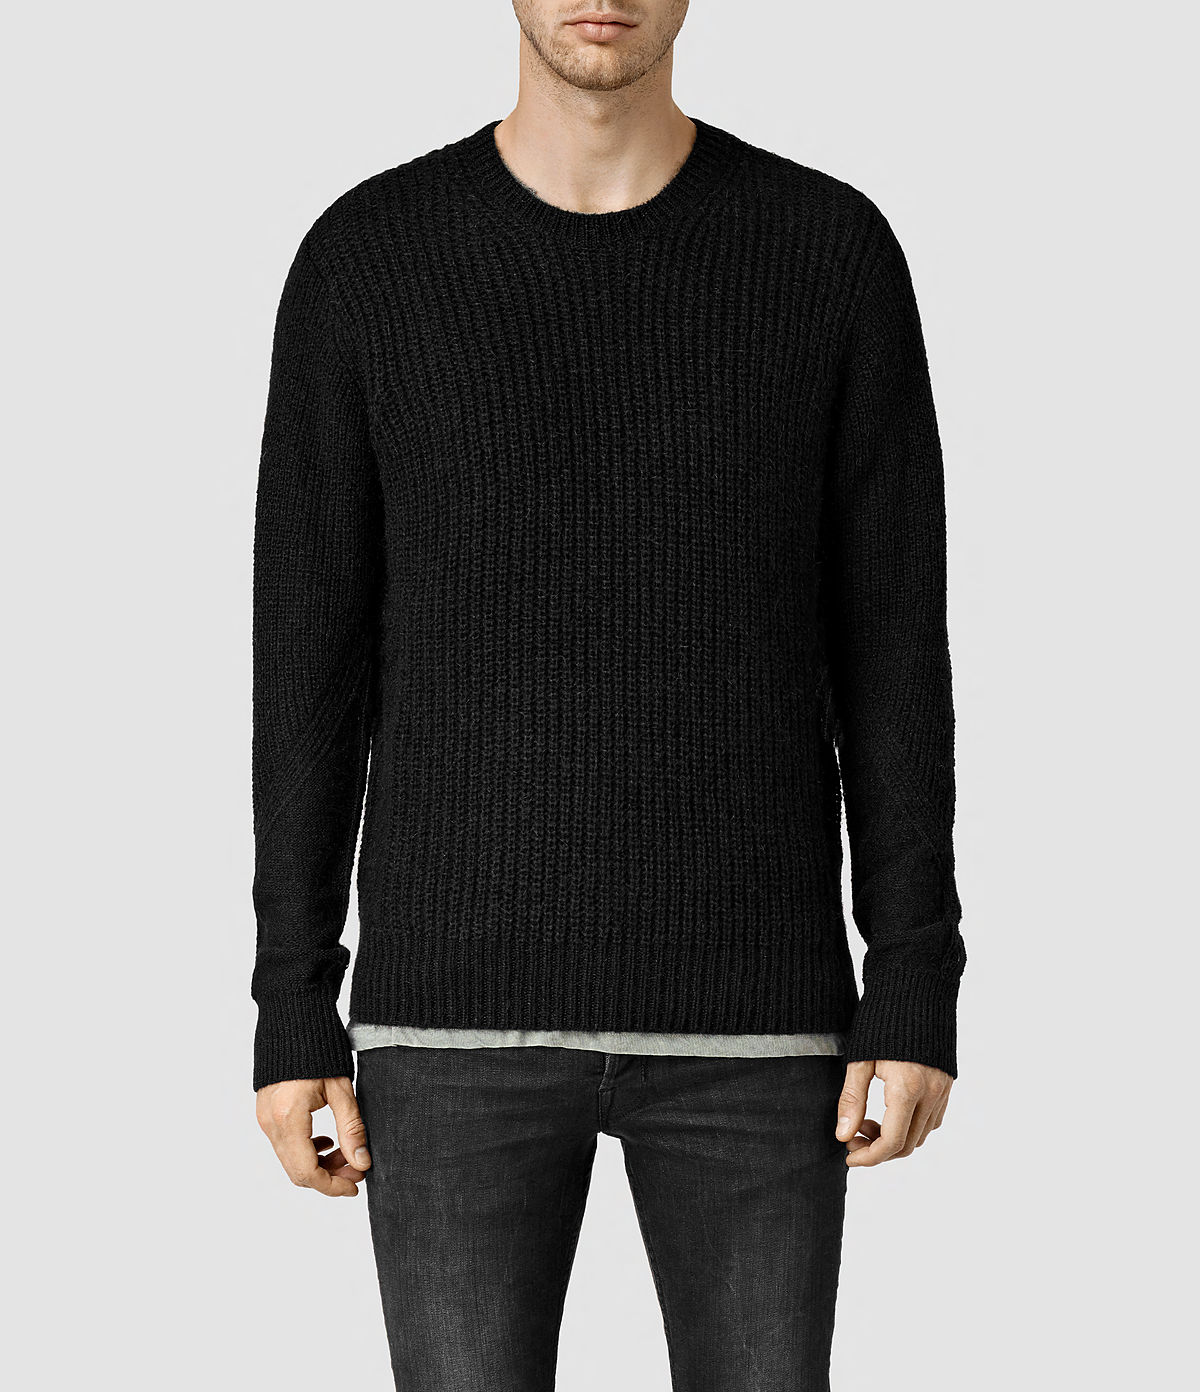 All-Saints Black Jumper